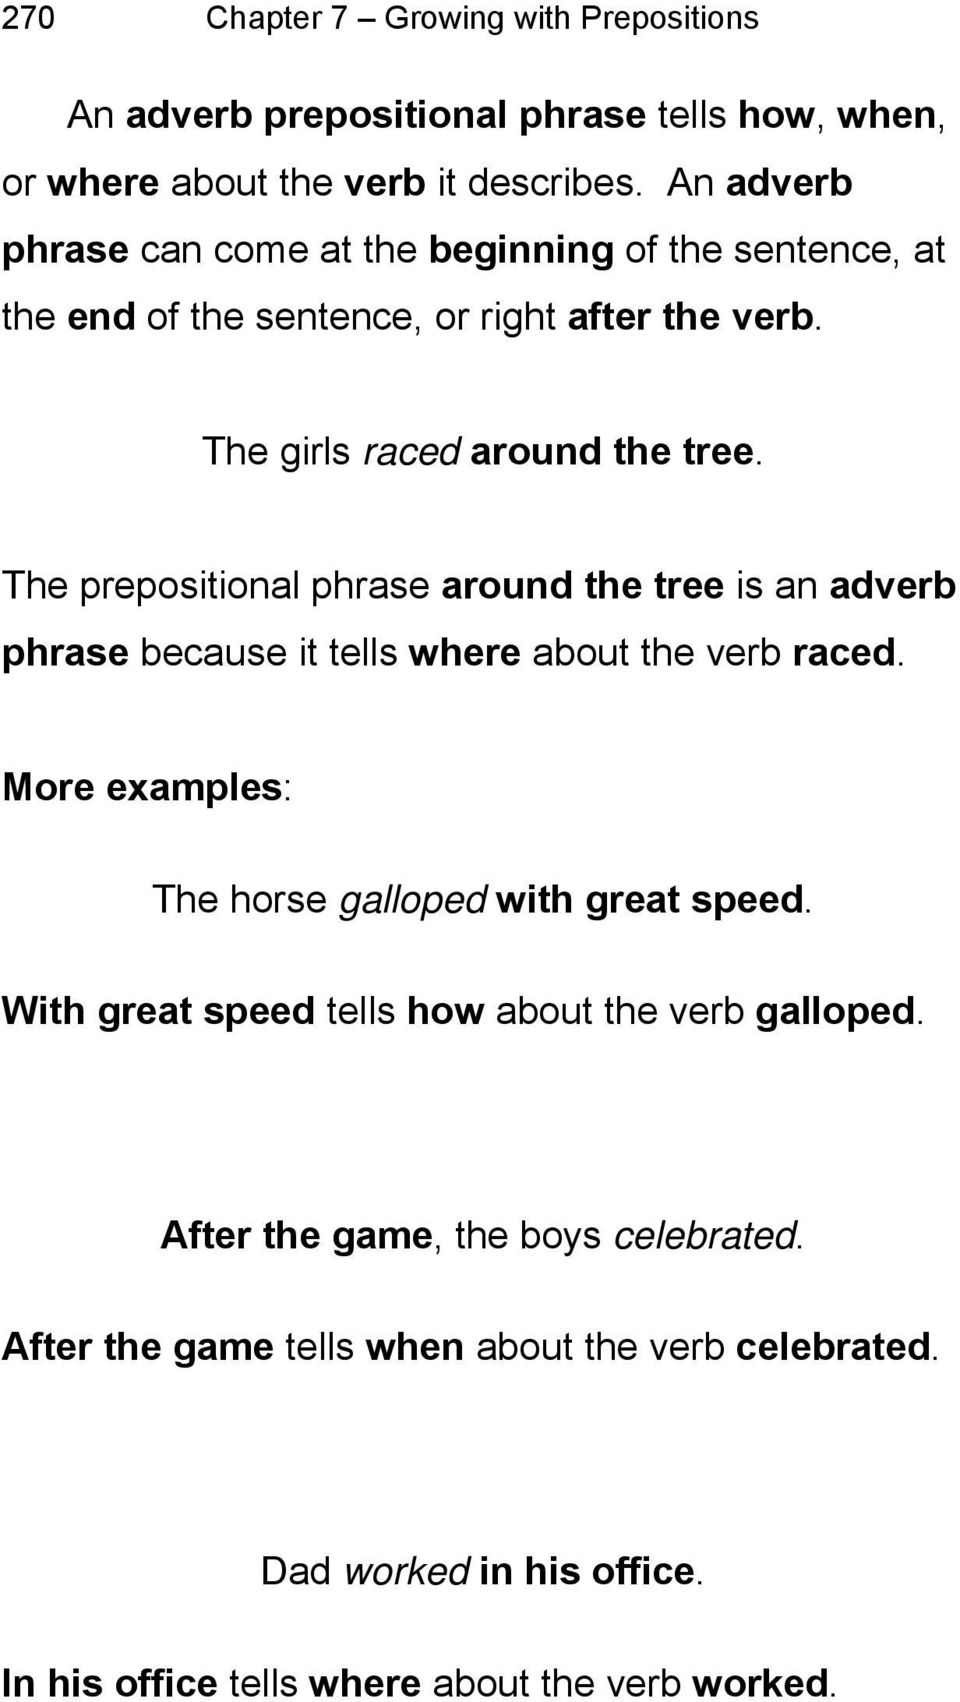 The prepositional phrase around the tree is an adverb phrase because it tells where about the verb raced. More examples: The horse galloped with great speed.